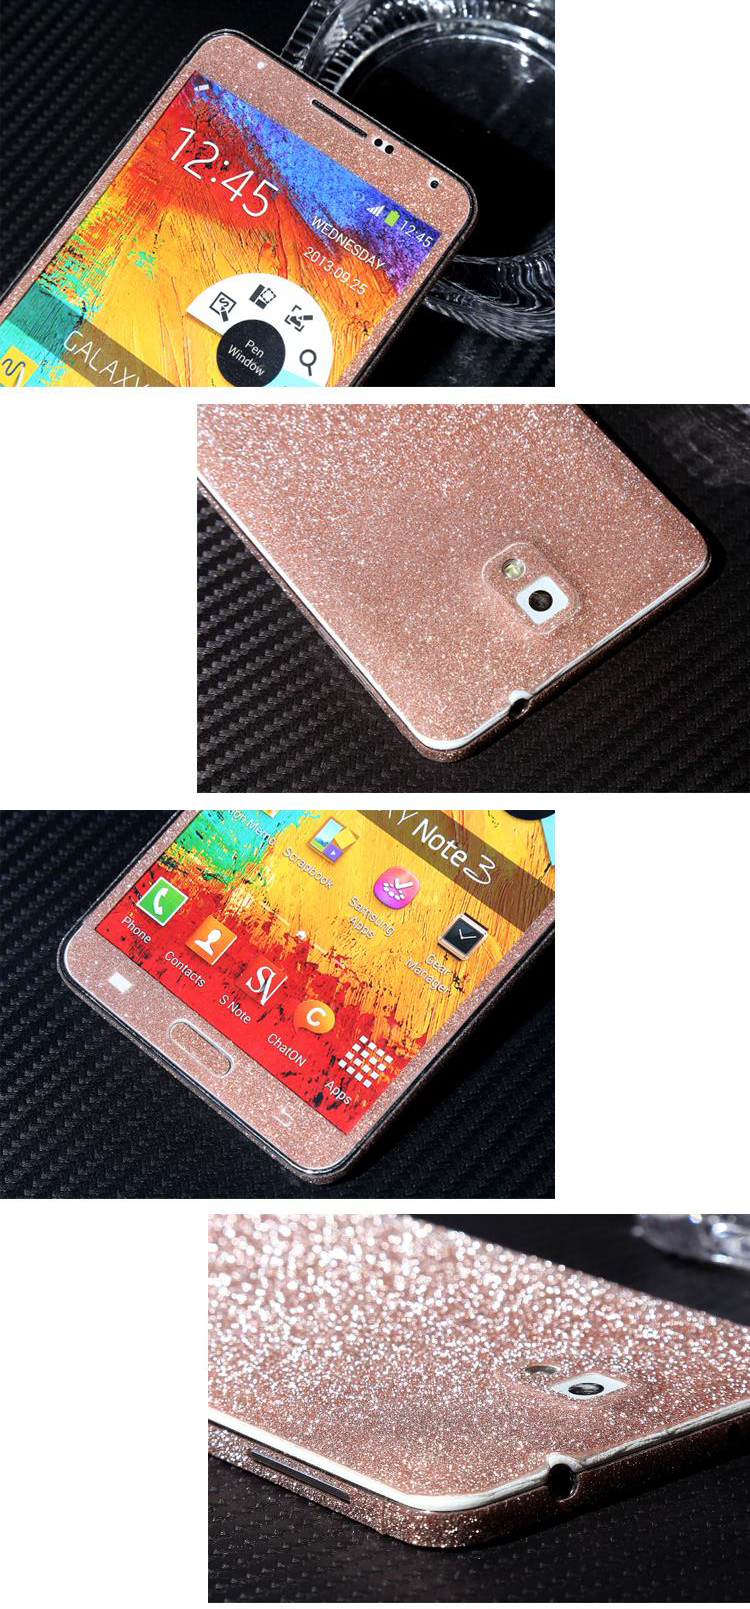 sticker-bling-samsung-galaxy-note-3